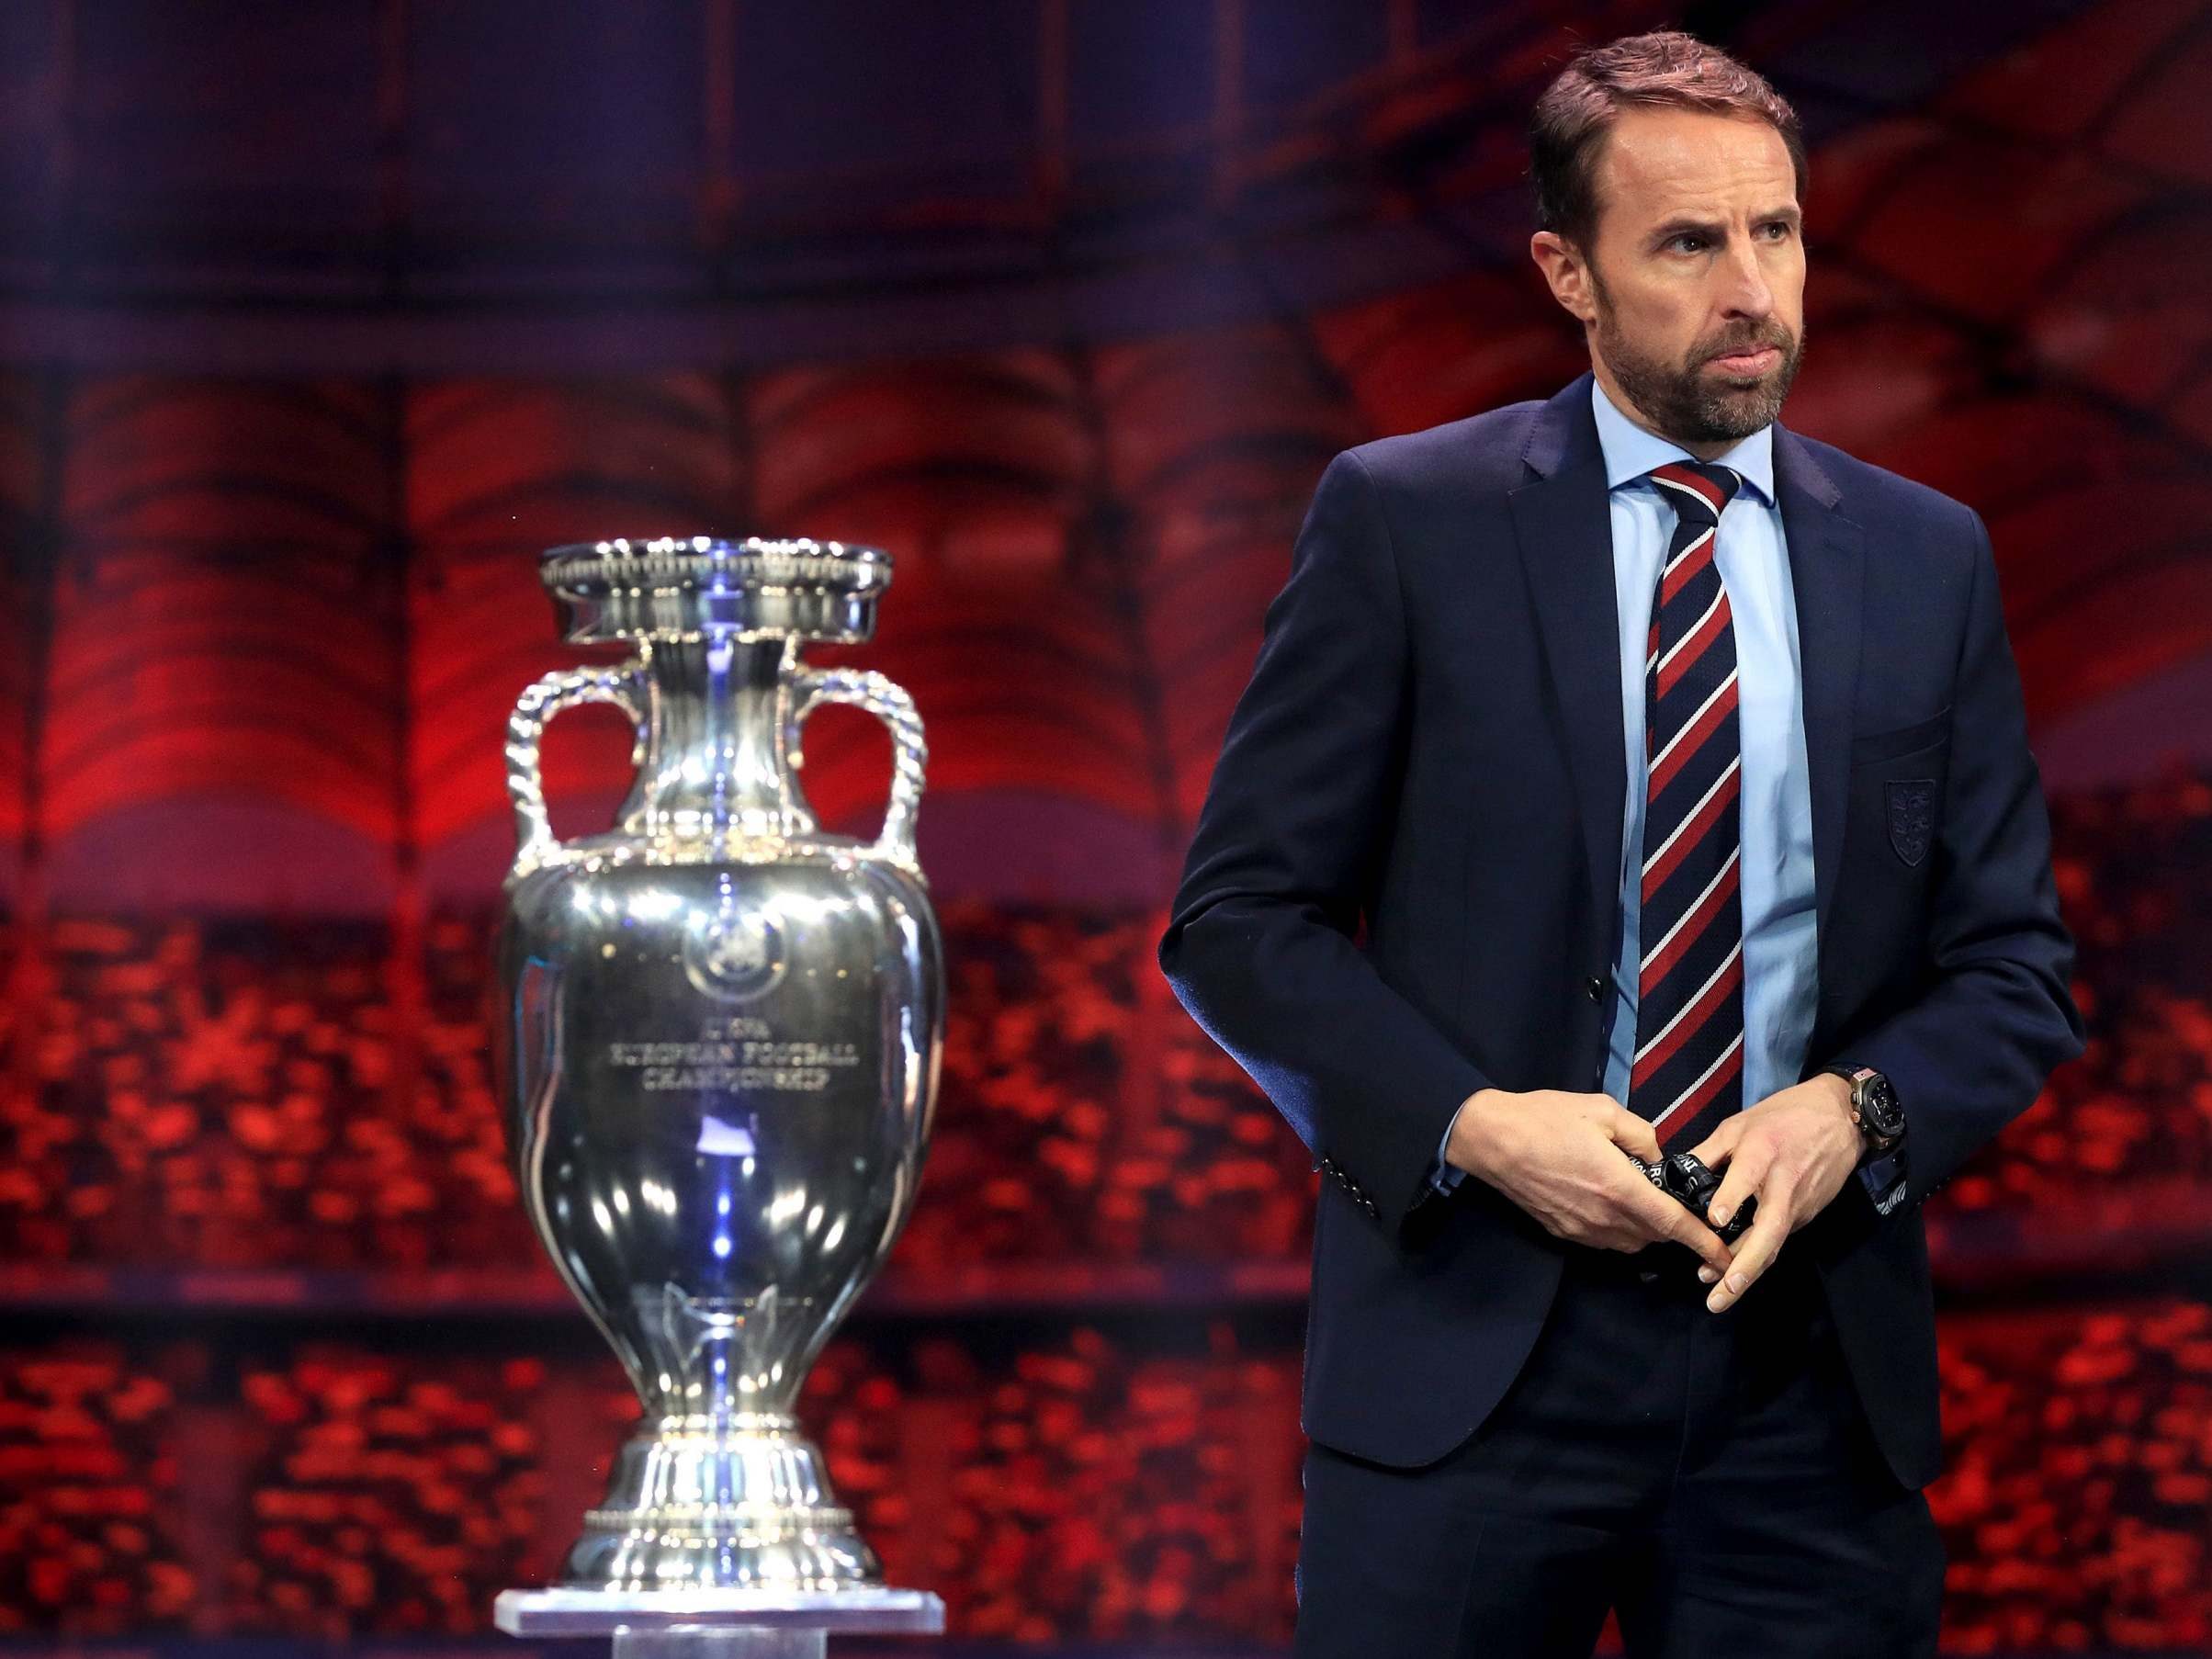 Euro 2020 draw: England's full schedule, group, dates, fixtures and ticket details